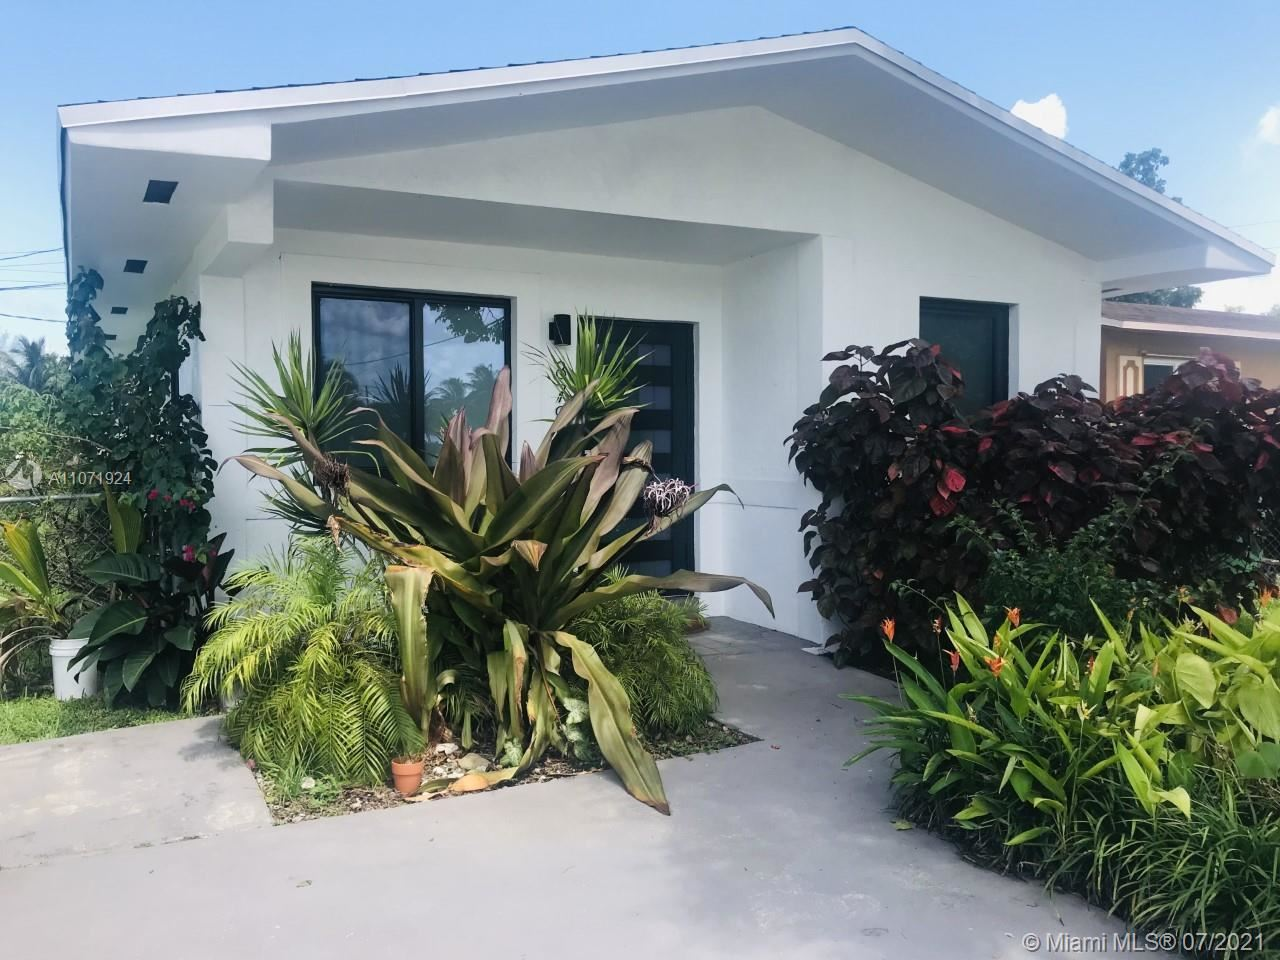 8795 NW 23rd Ave, Miami, FL 33147 - #: A11071924